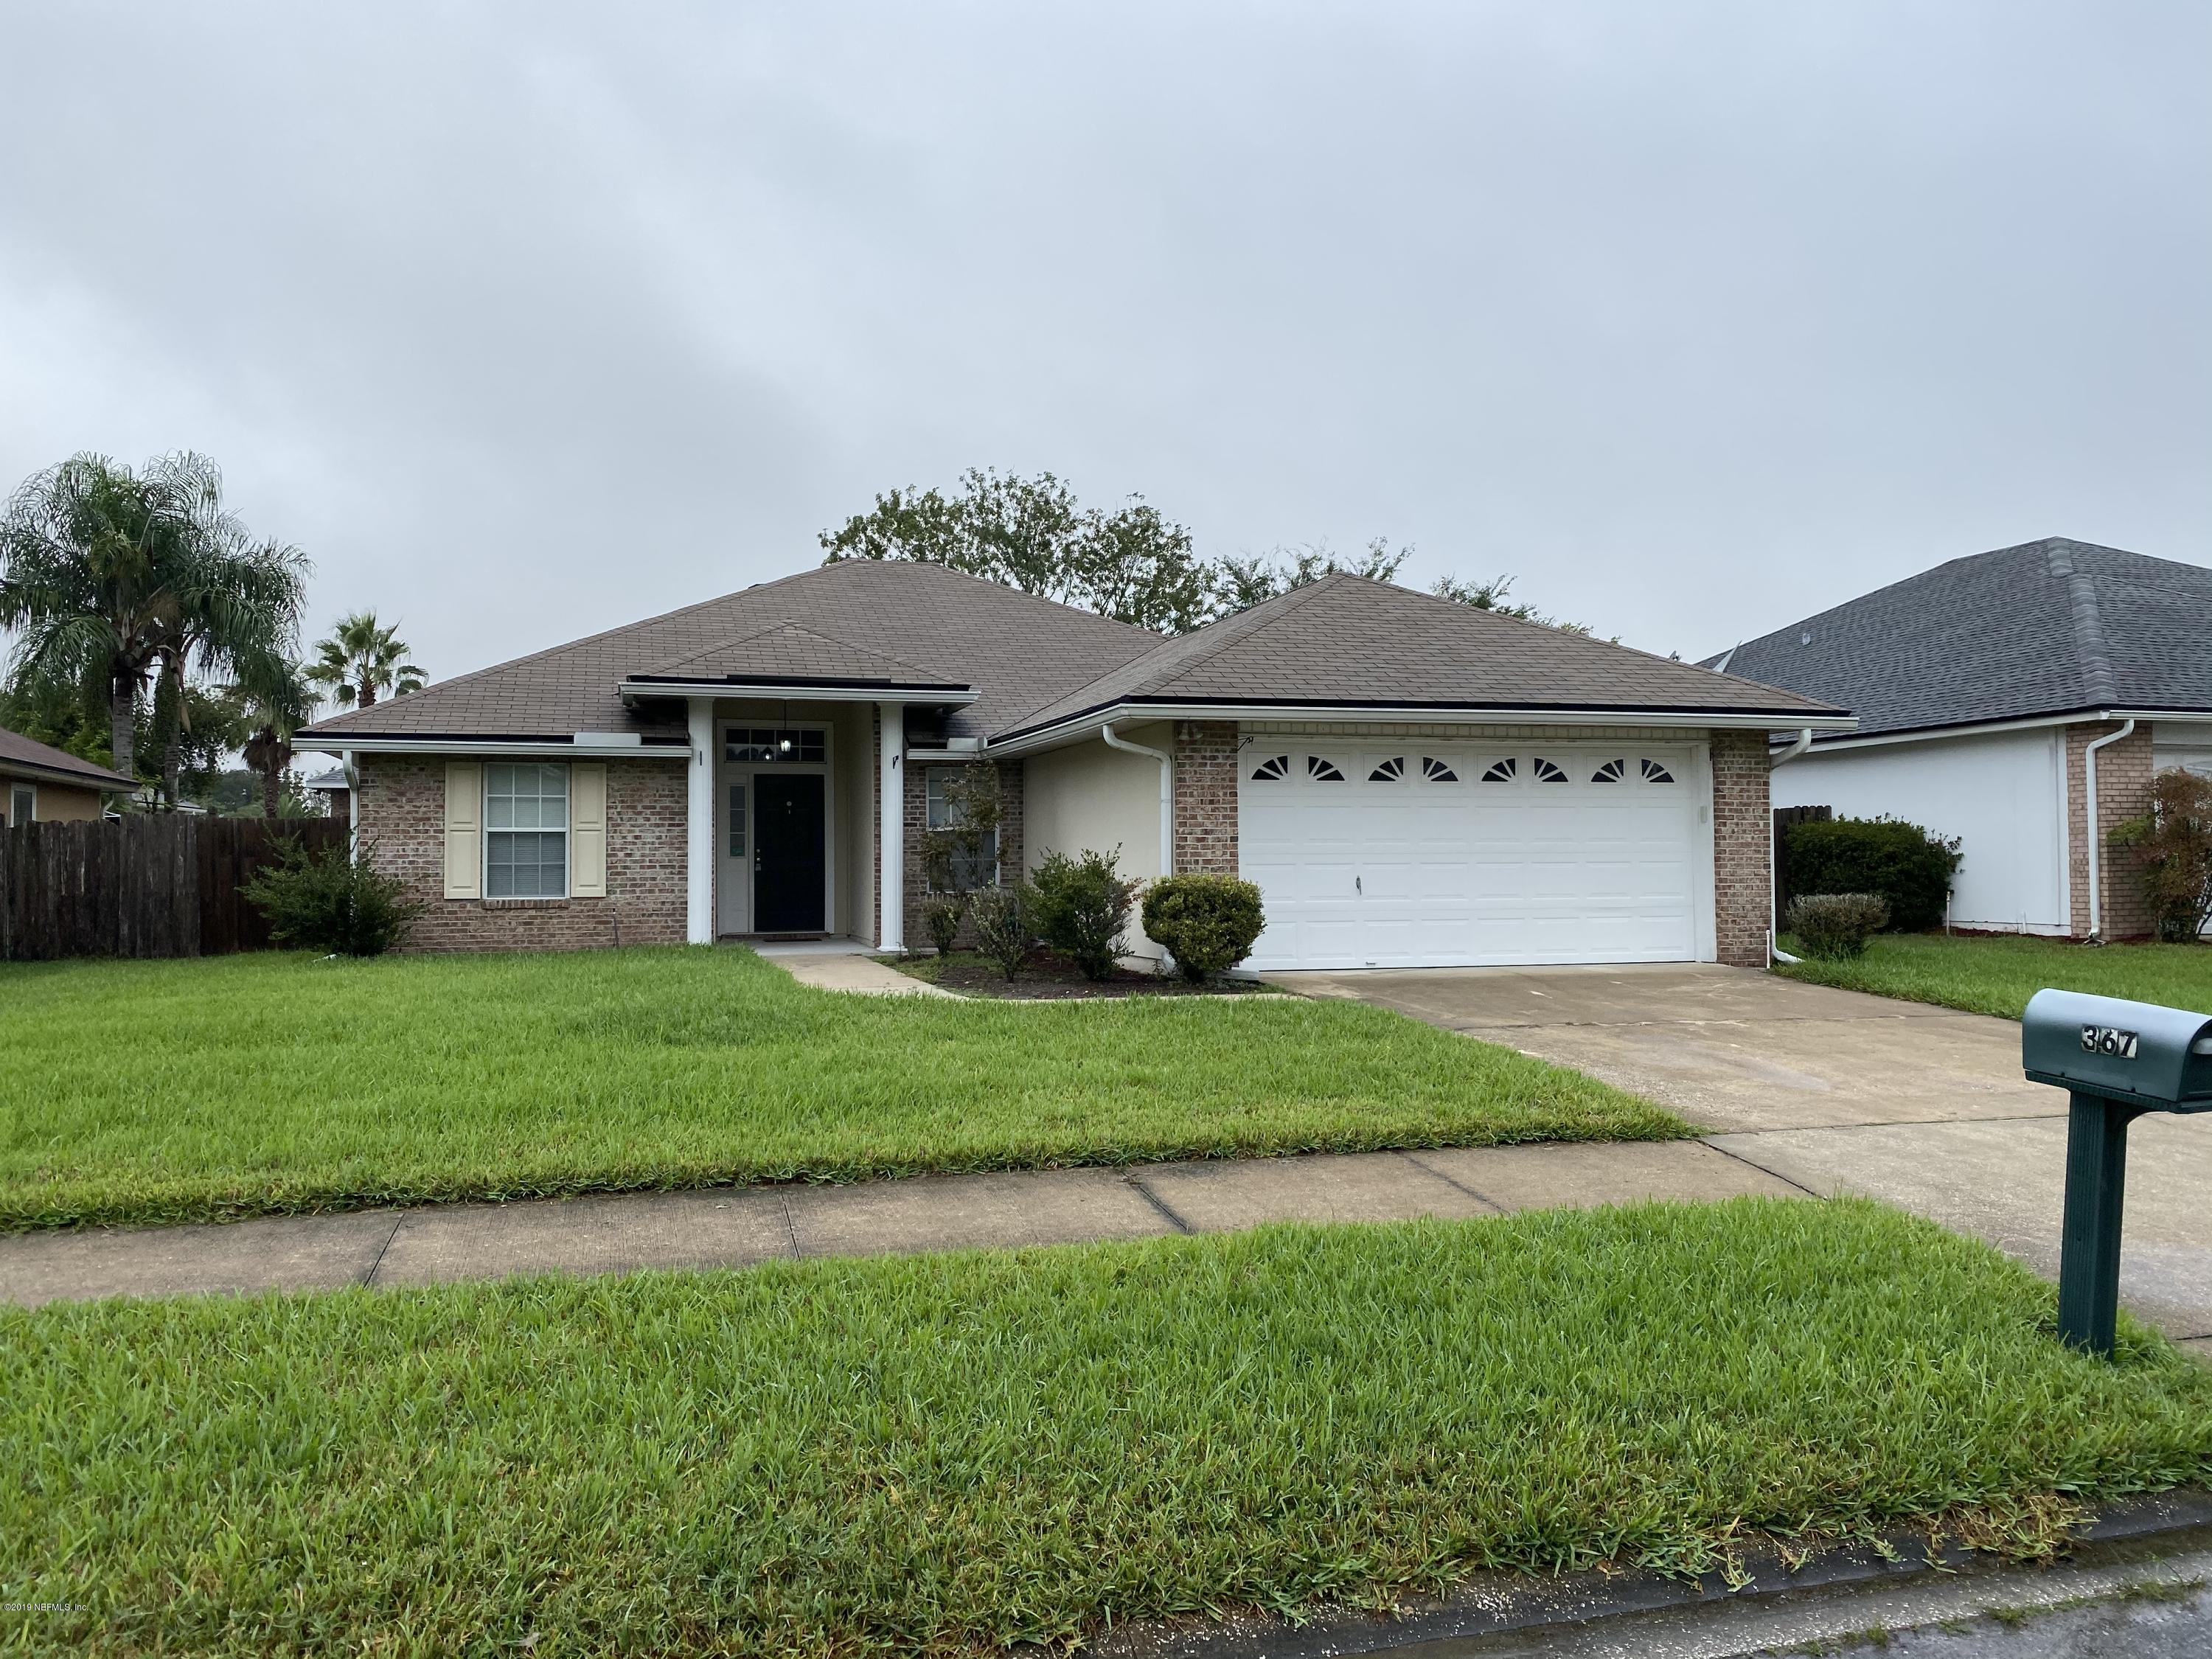 367 SUMMIT, ORANGE PARK, FLORIDA 32073, 3 Bedrooms Bedrooms, ,2 BathroomsBathrooms,Rental,For sale,SUMMIT,1020530